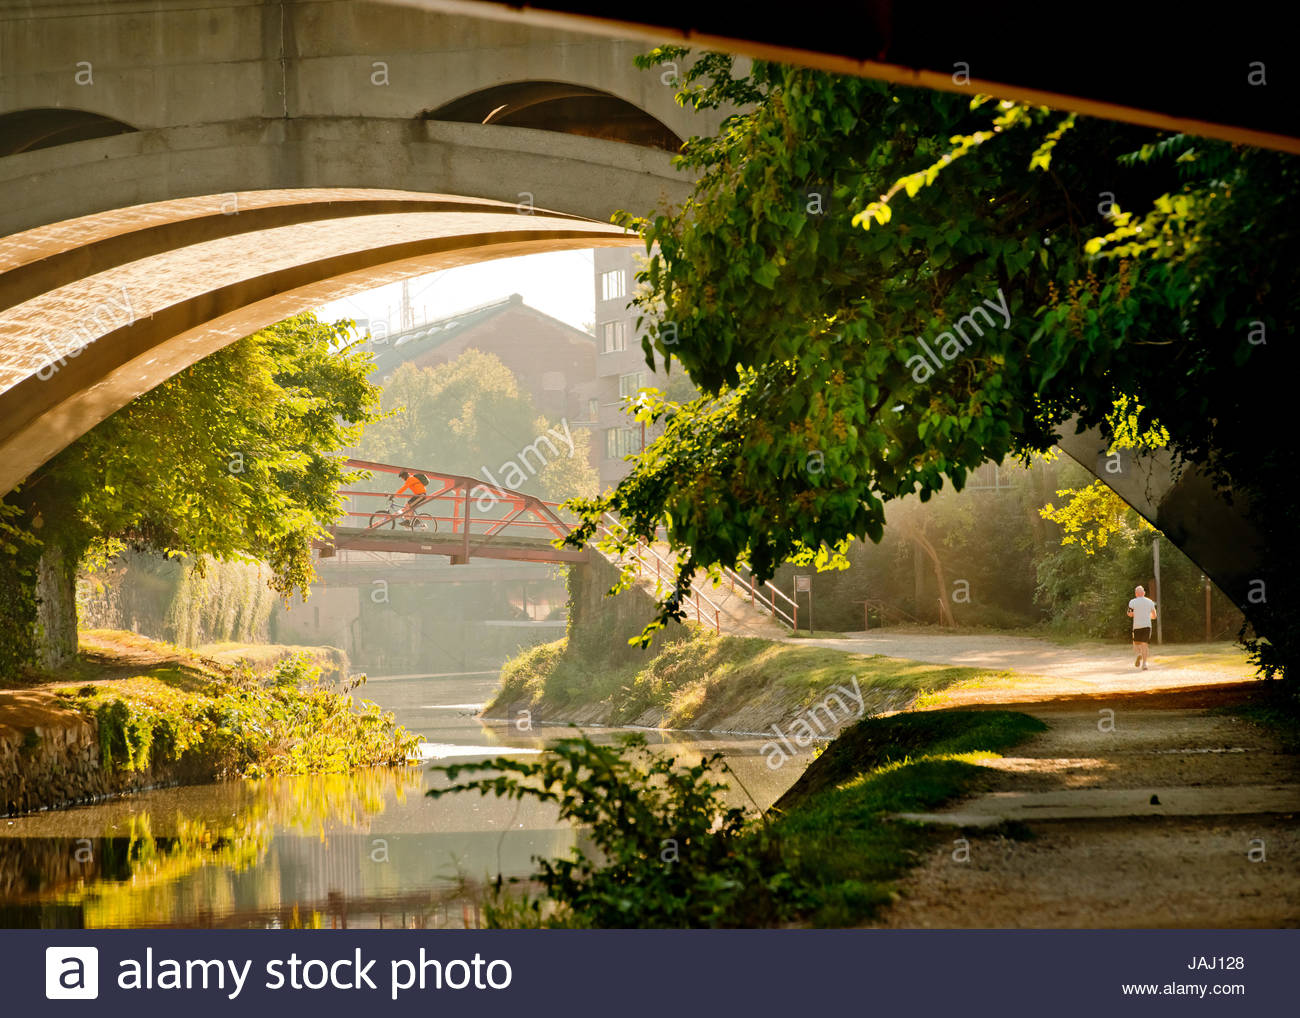 A man runs along the towpath of the C & O Canal in Georgetown. - Stock Image